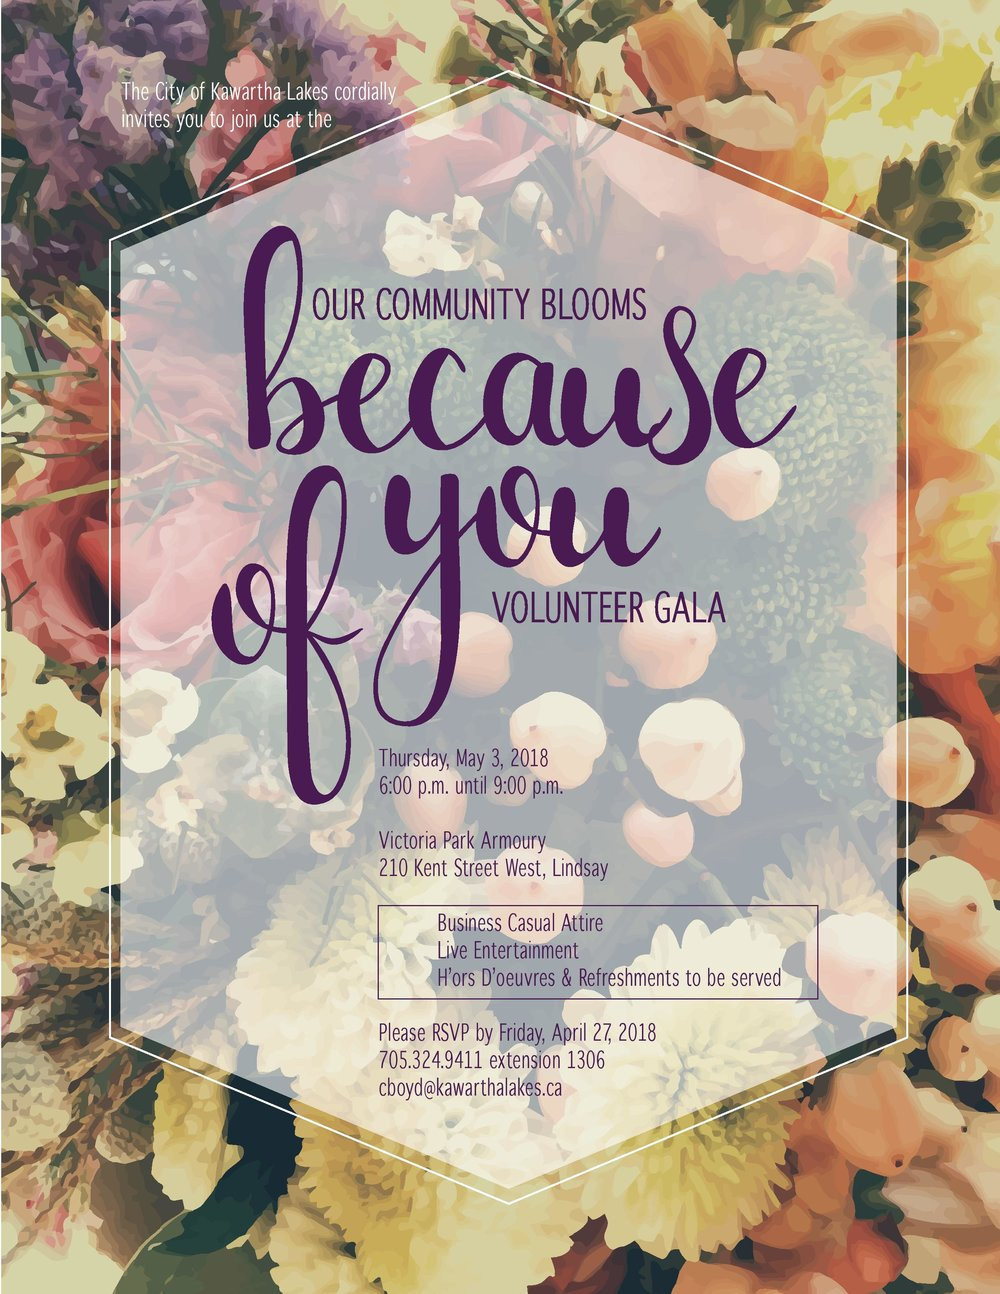 Our Community Blooms_Volunteer Gala